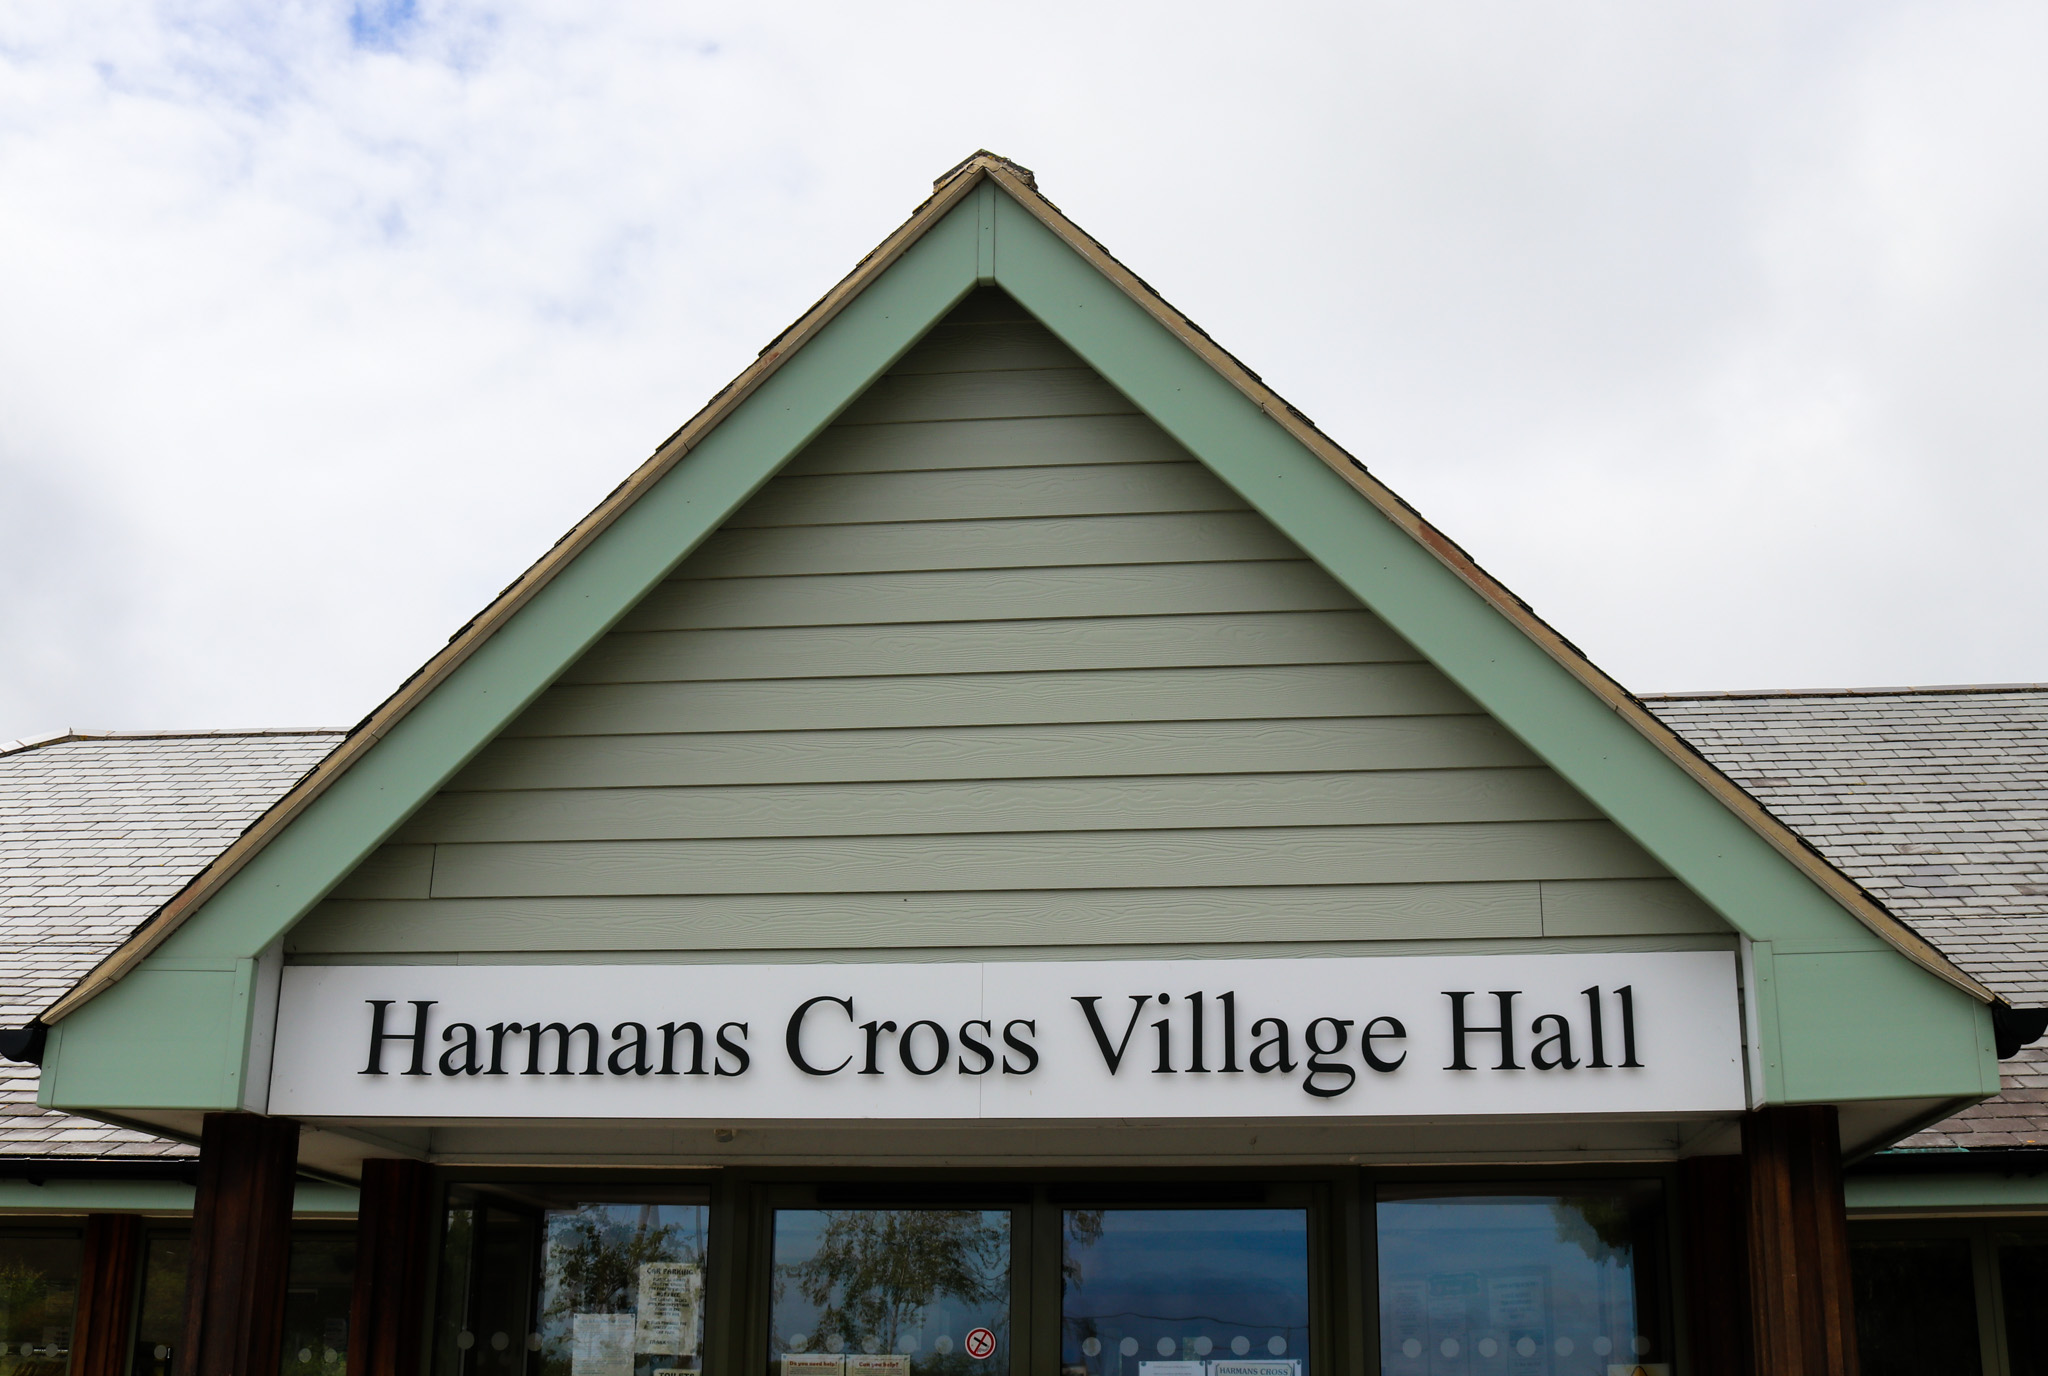 Harman's Cross village hall sign